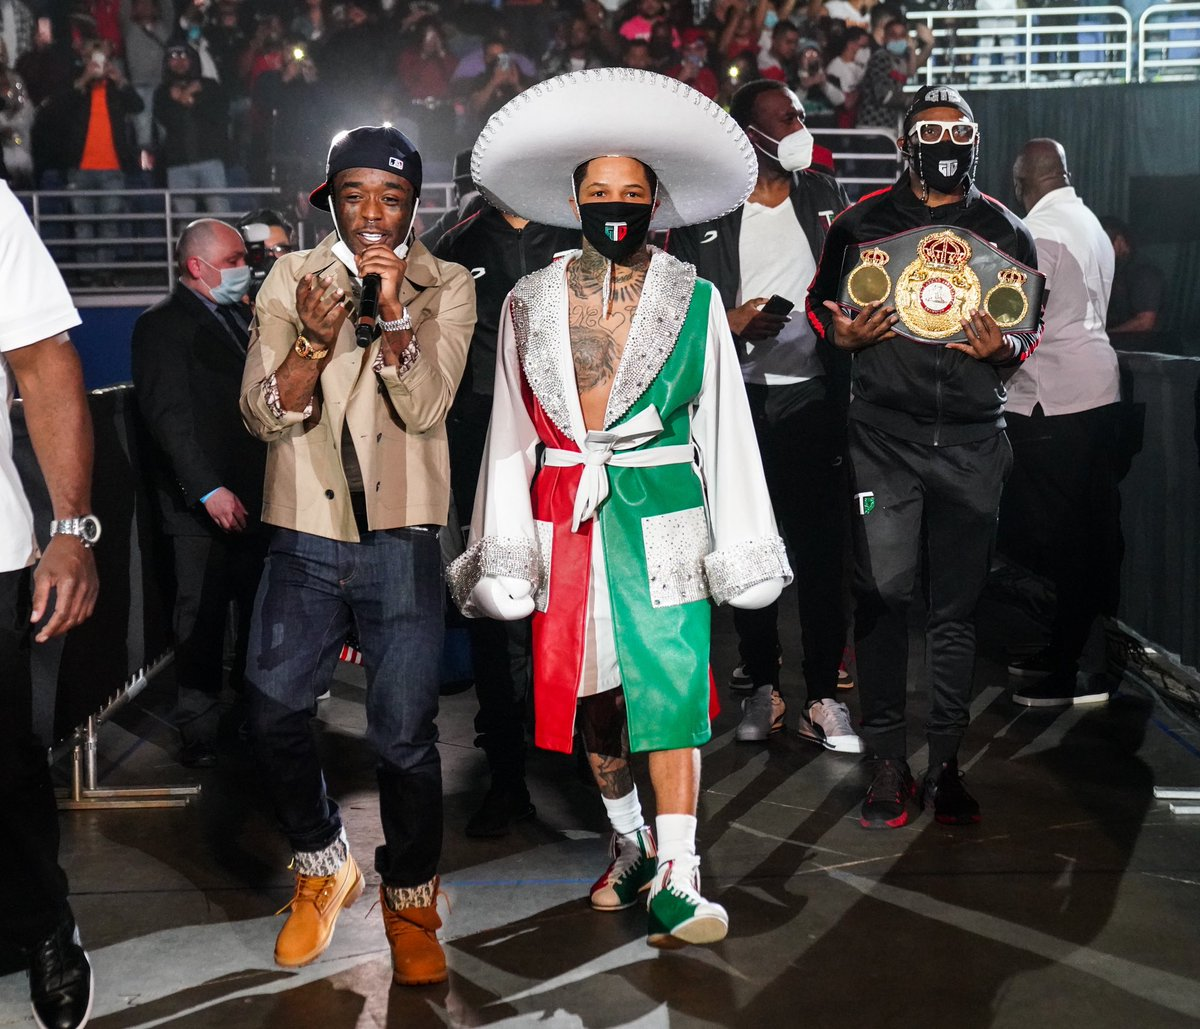 The Champ @gervontaa paid homage to Big Bro @floydmayweather with tonight's walkout outfit.  Which fight did Floyd Mayweather wear this outfit? #DavisSantaCruz